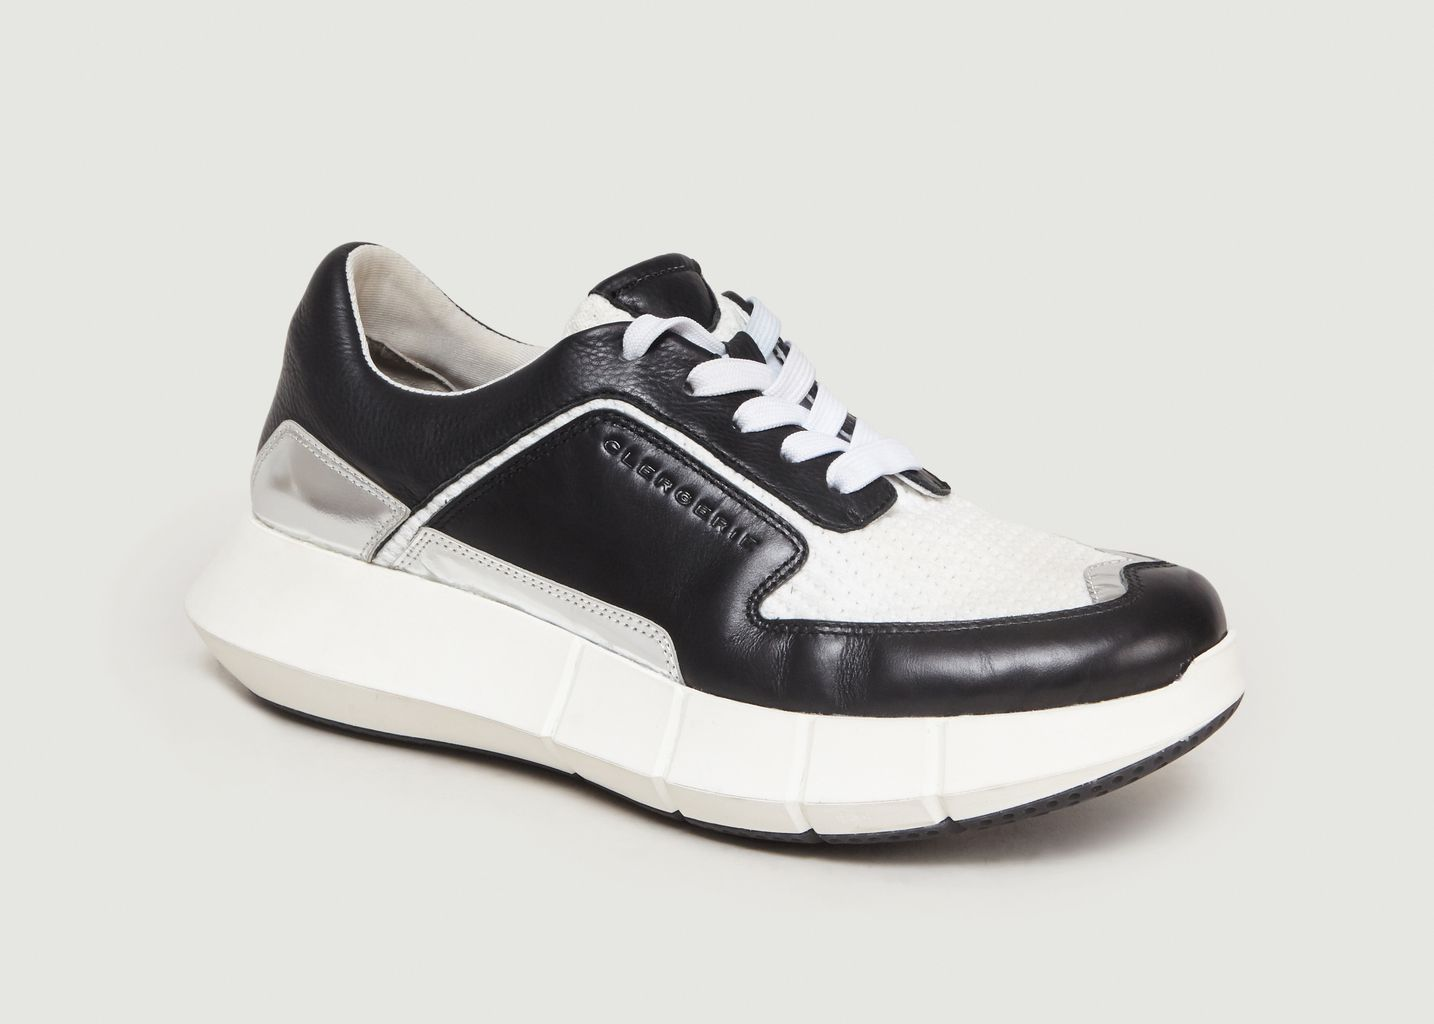 Sneakers Affinite - Clergerie